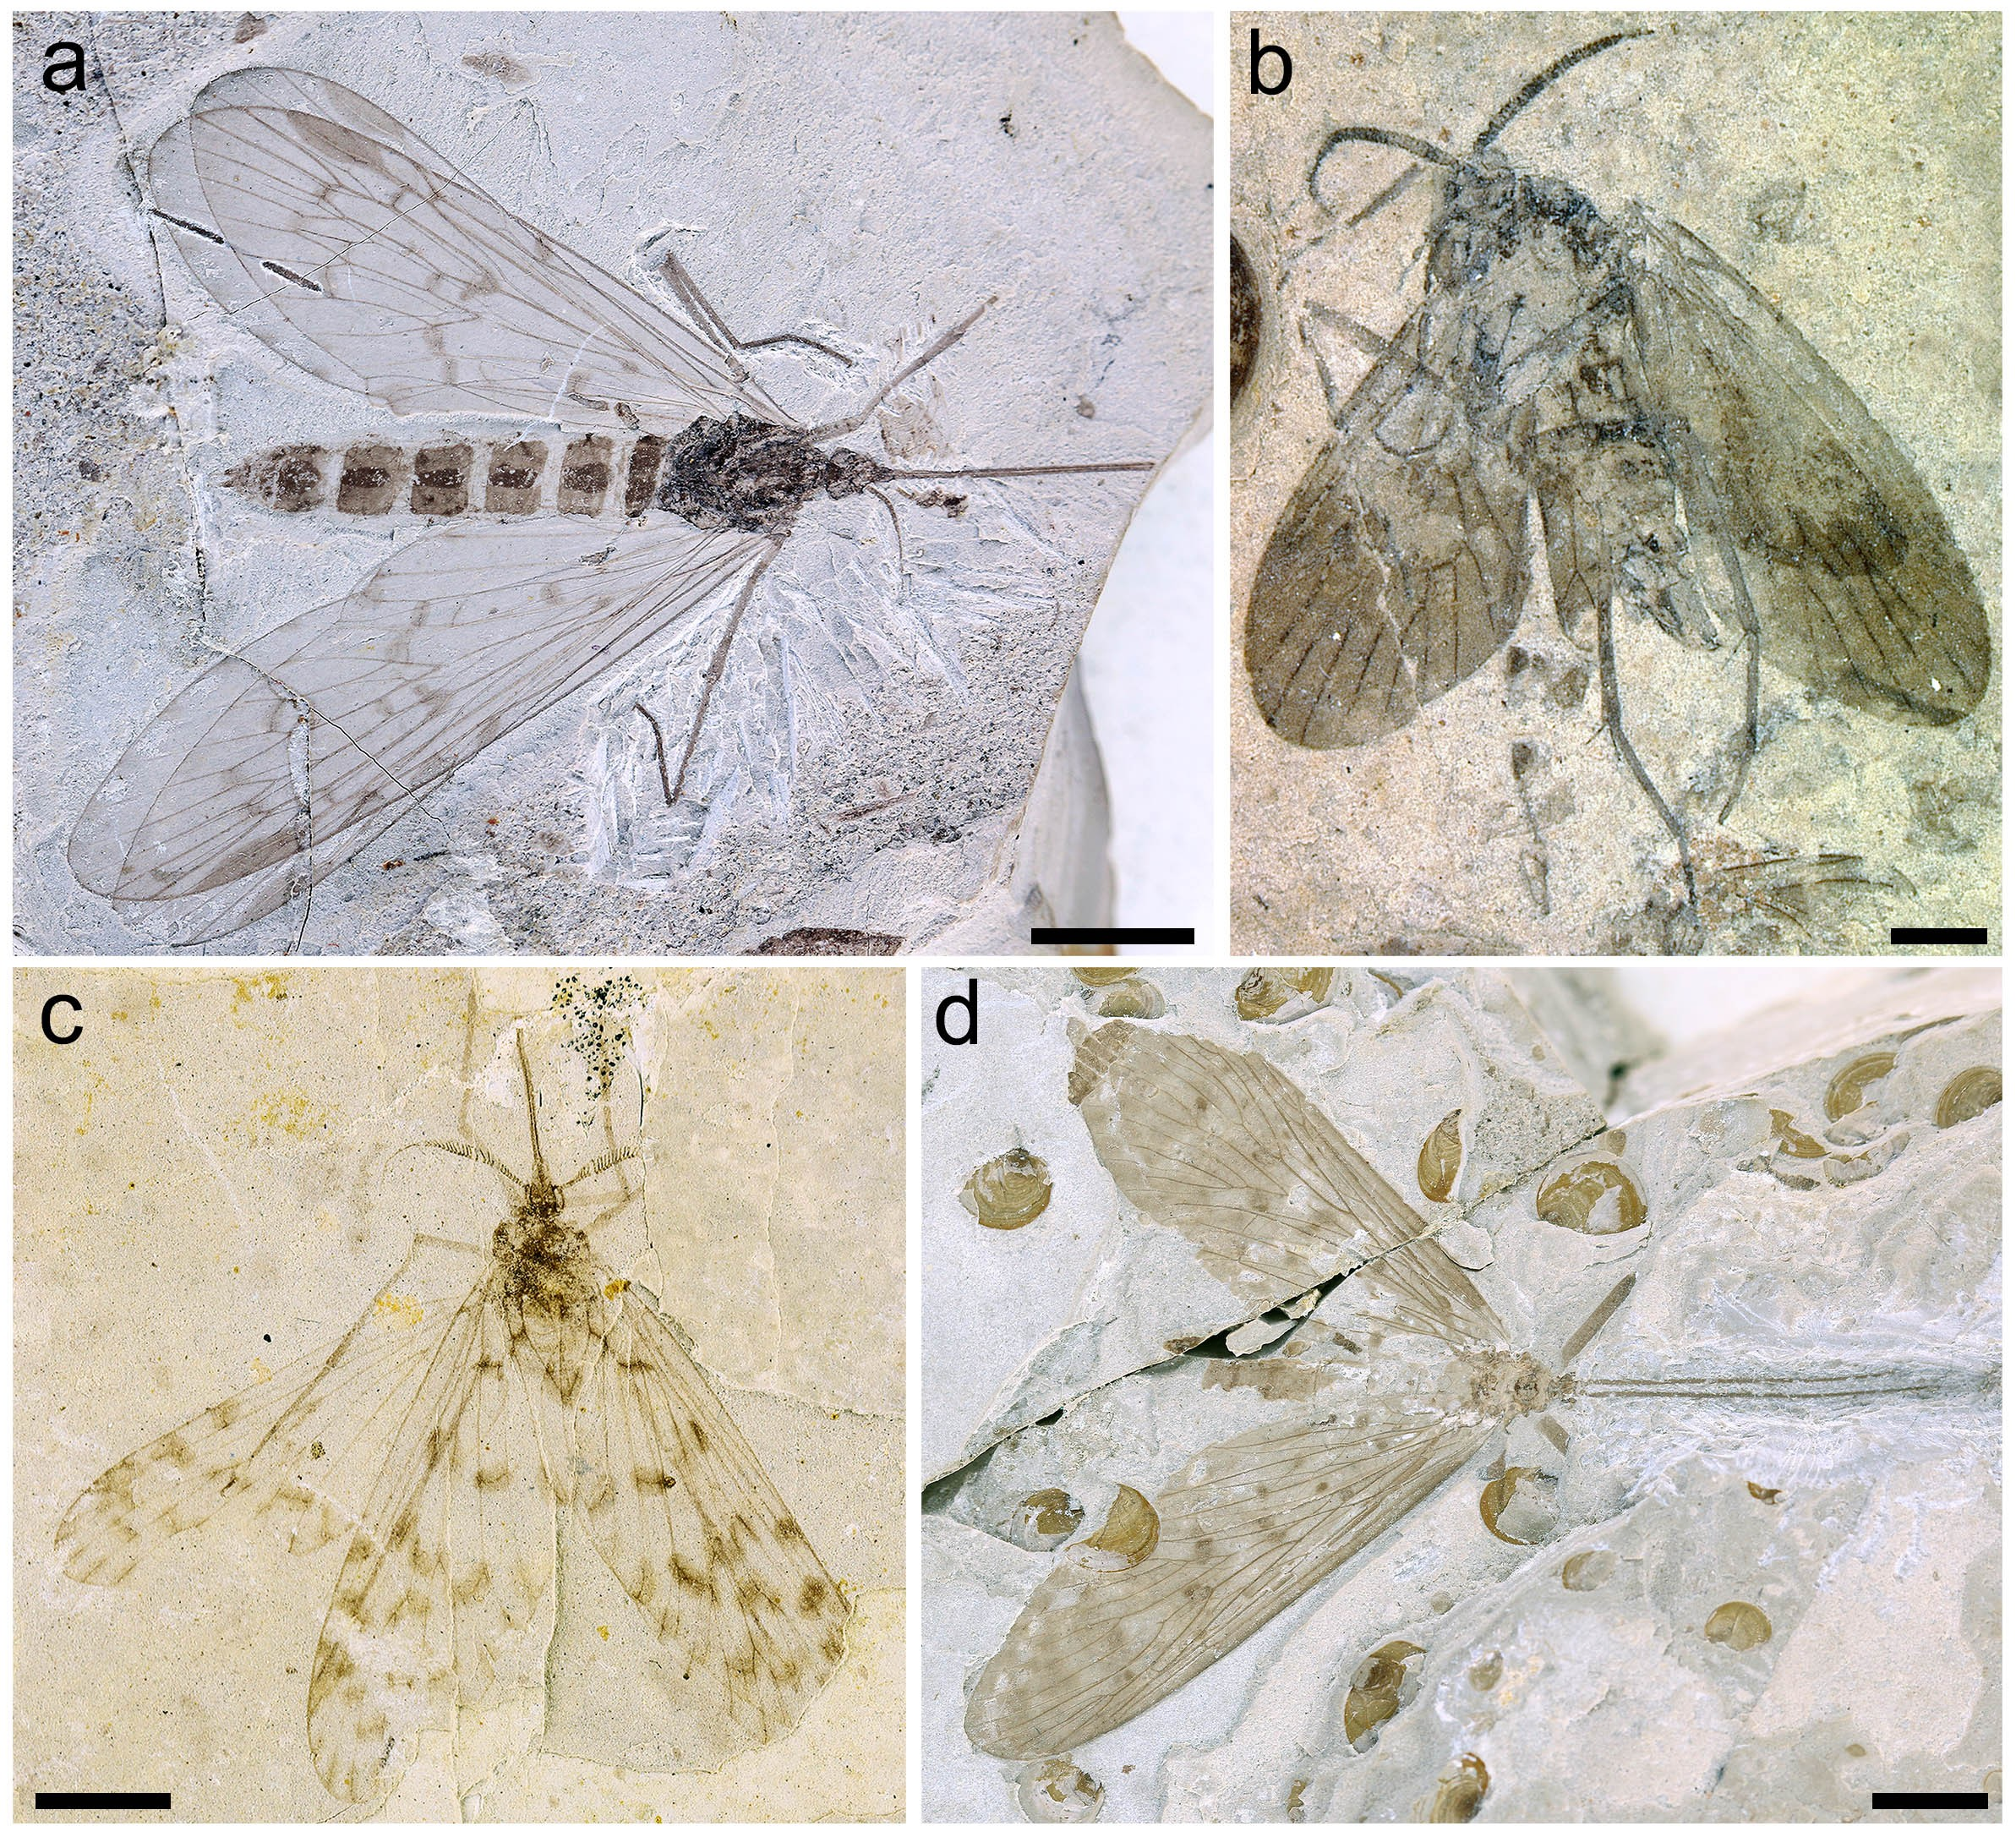 Fig. 1 New photos of Mesopsychidae and Pseudopolycentropodidae holotypes from Northeastern China.